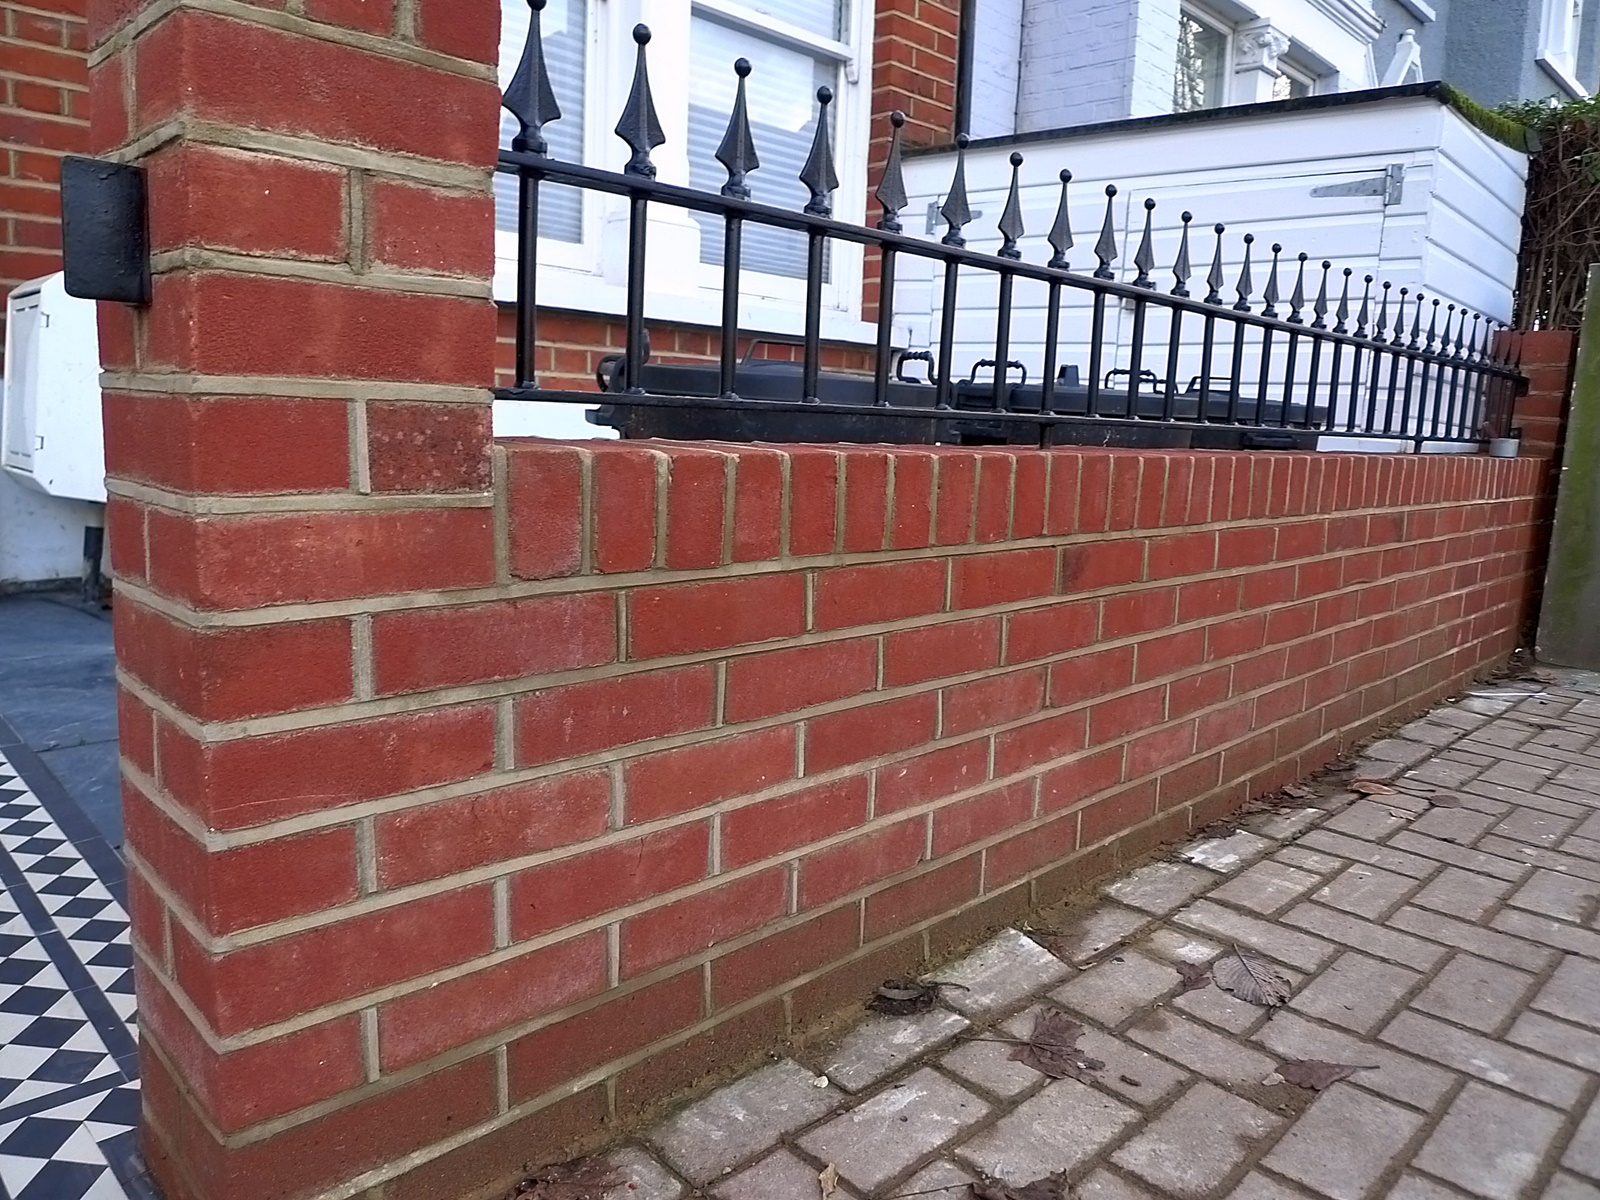 Victorian Front Company London Walls Red Brick Formal Bespoke Tile Grey  Path Wrought Rail Metal Gate Earsfield Battersea Streatham Clapham